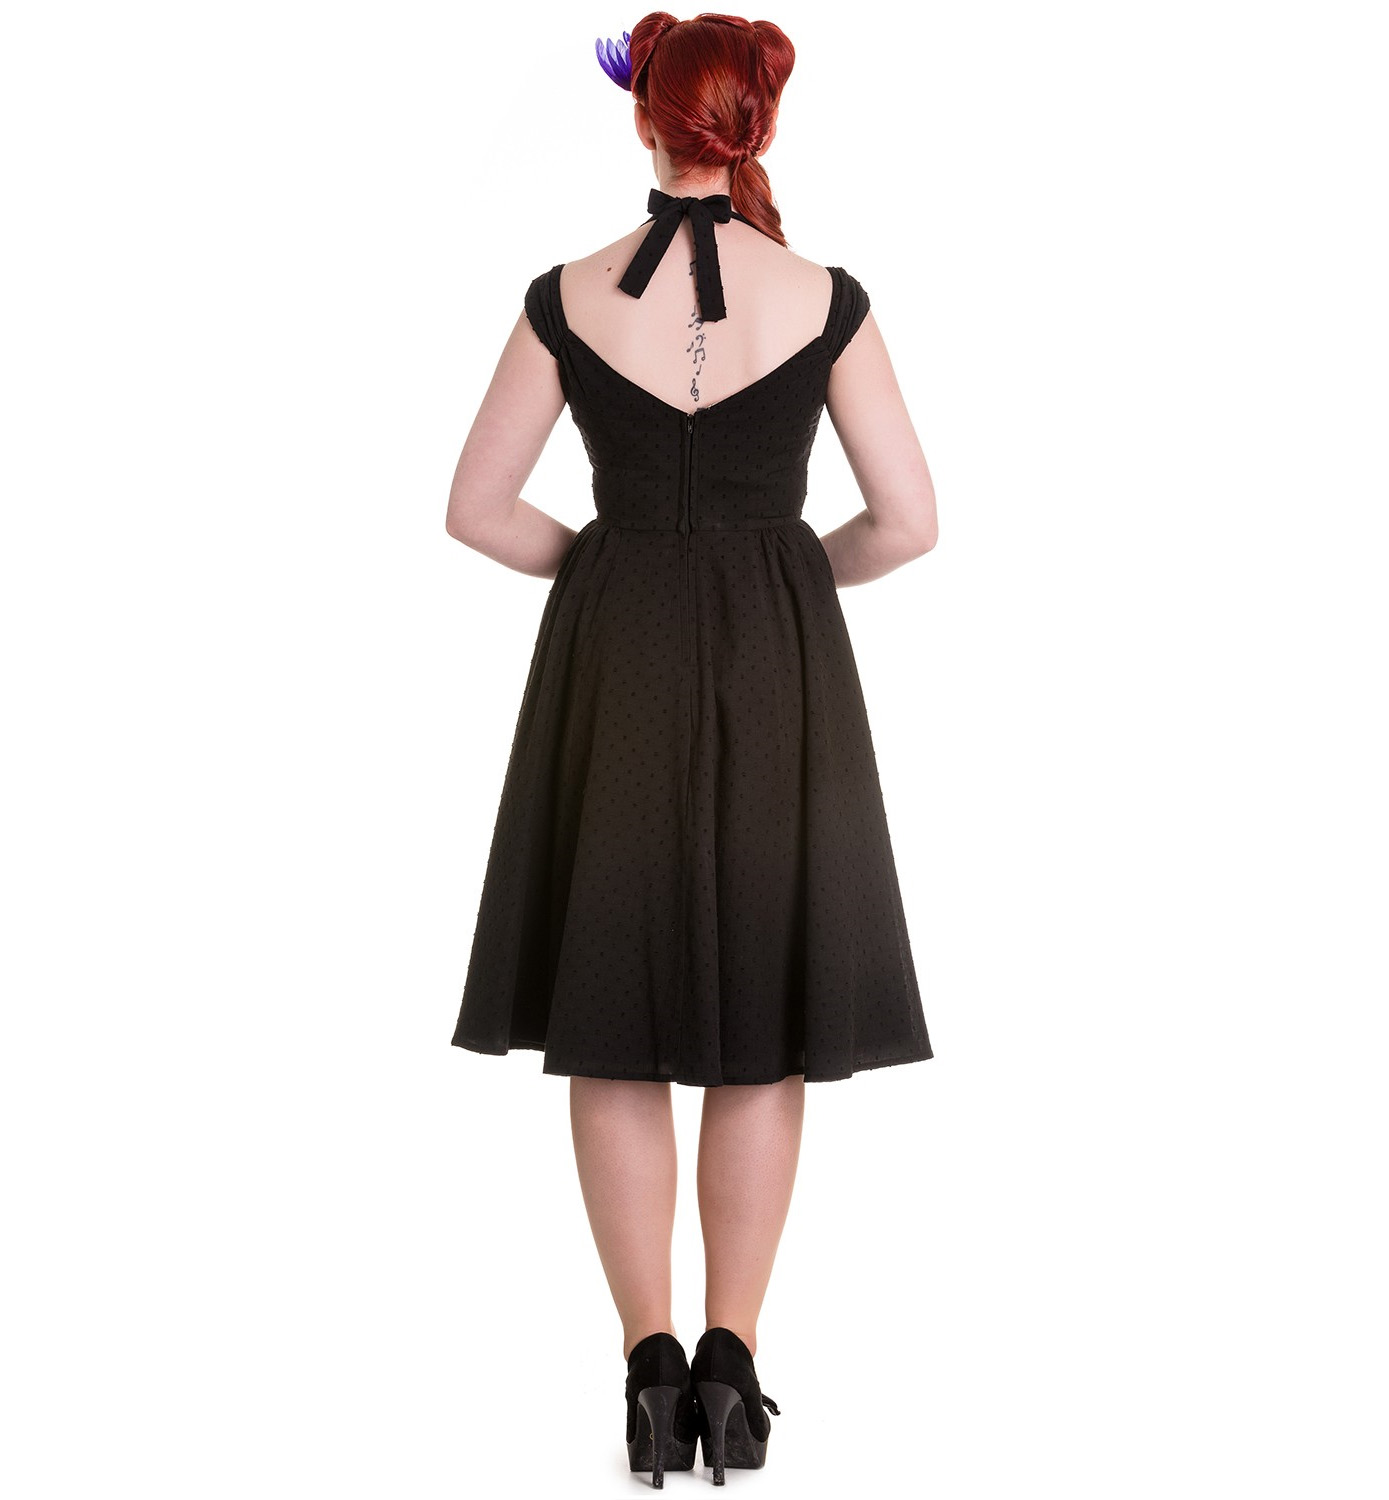 Hell-Bunny-Pin-Up-Summer-50s-Dress-Vintage-Rockabilly-EVELINE-Black-All-Sizes thumbnail 5